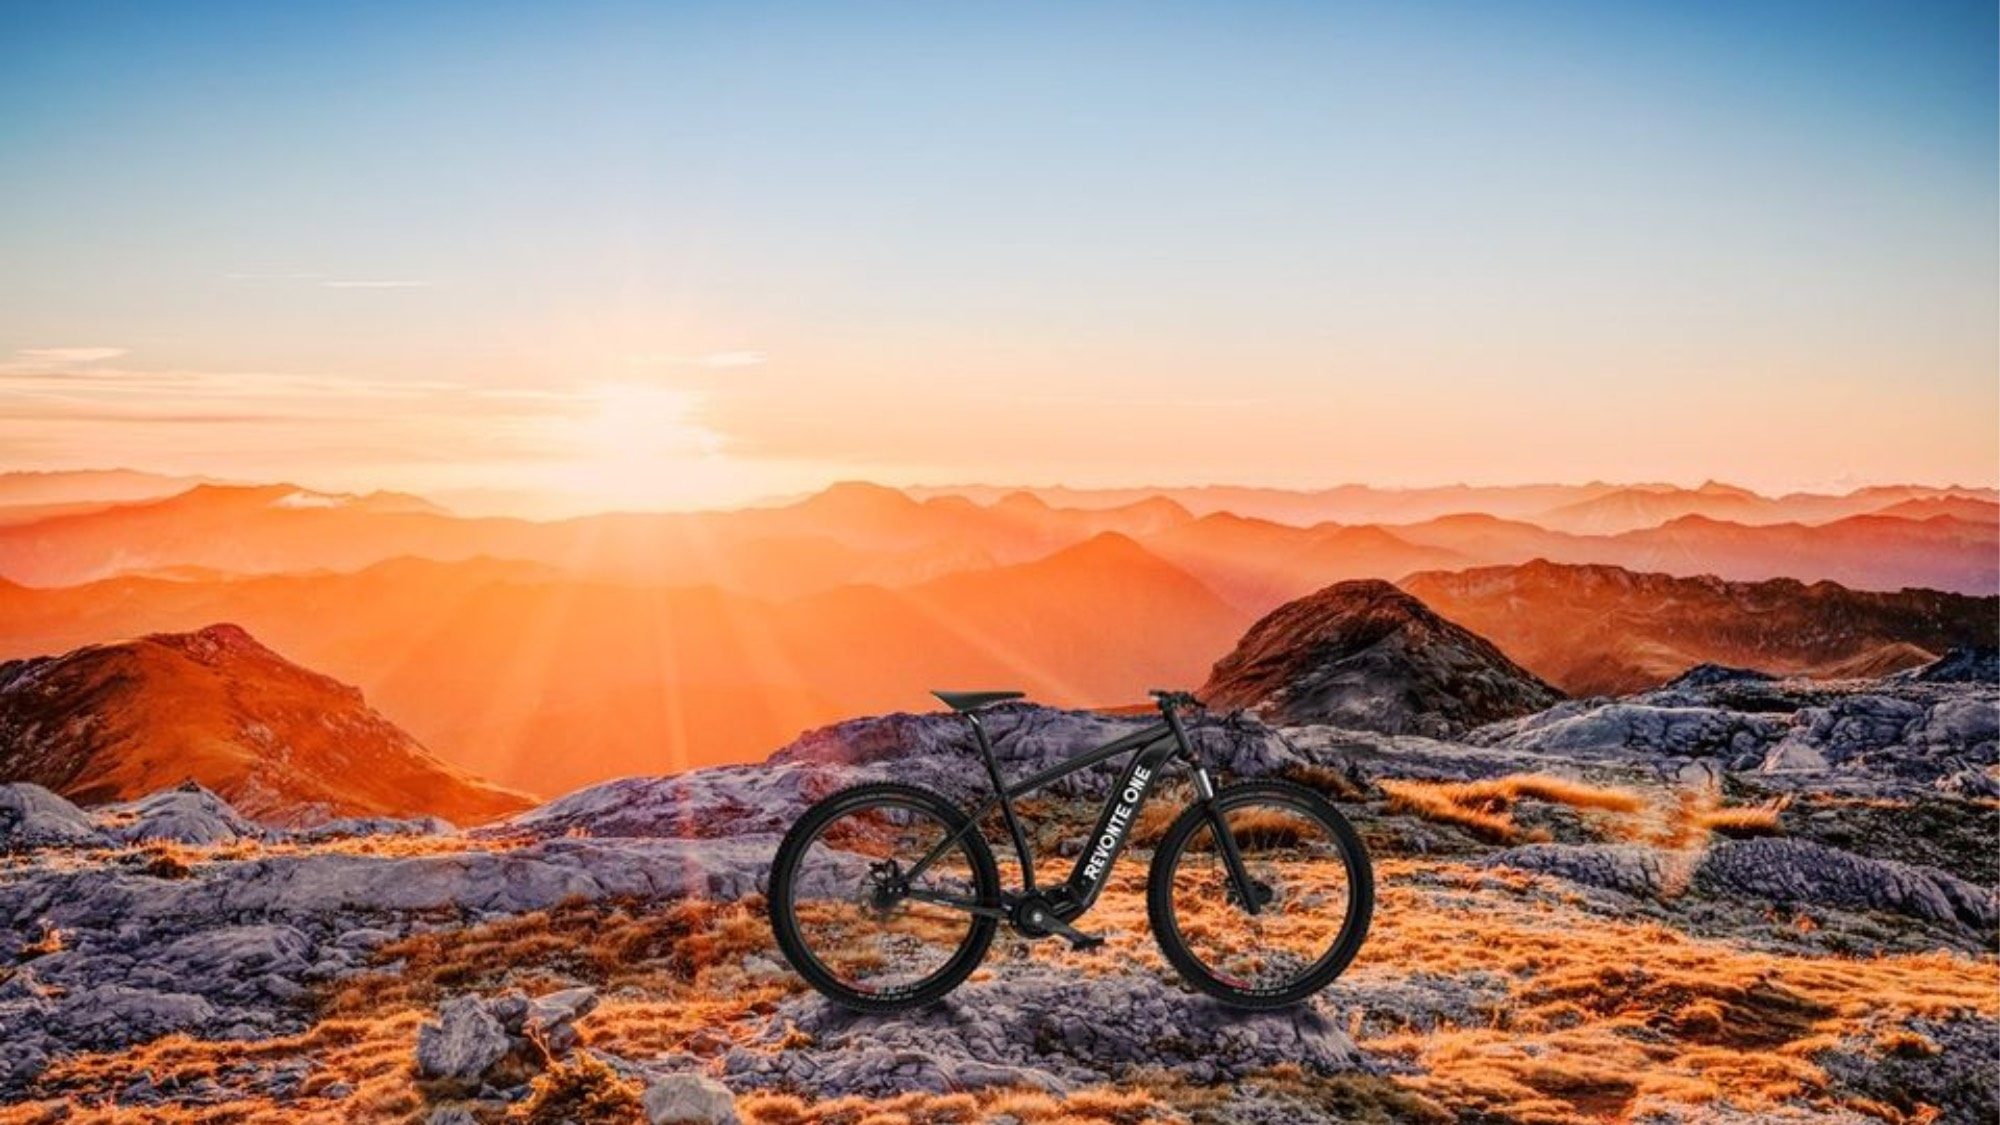 A Revonte bicycle on a mountain at sunset